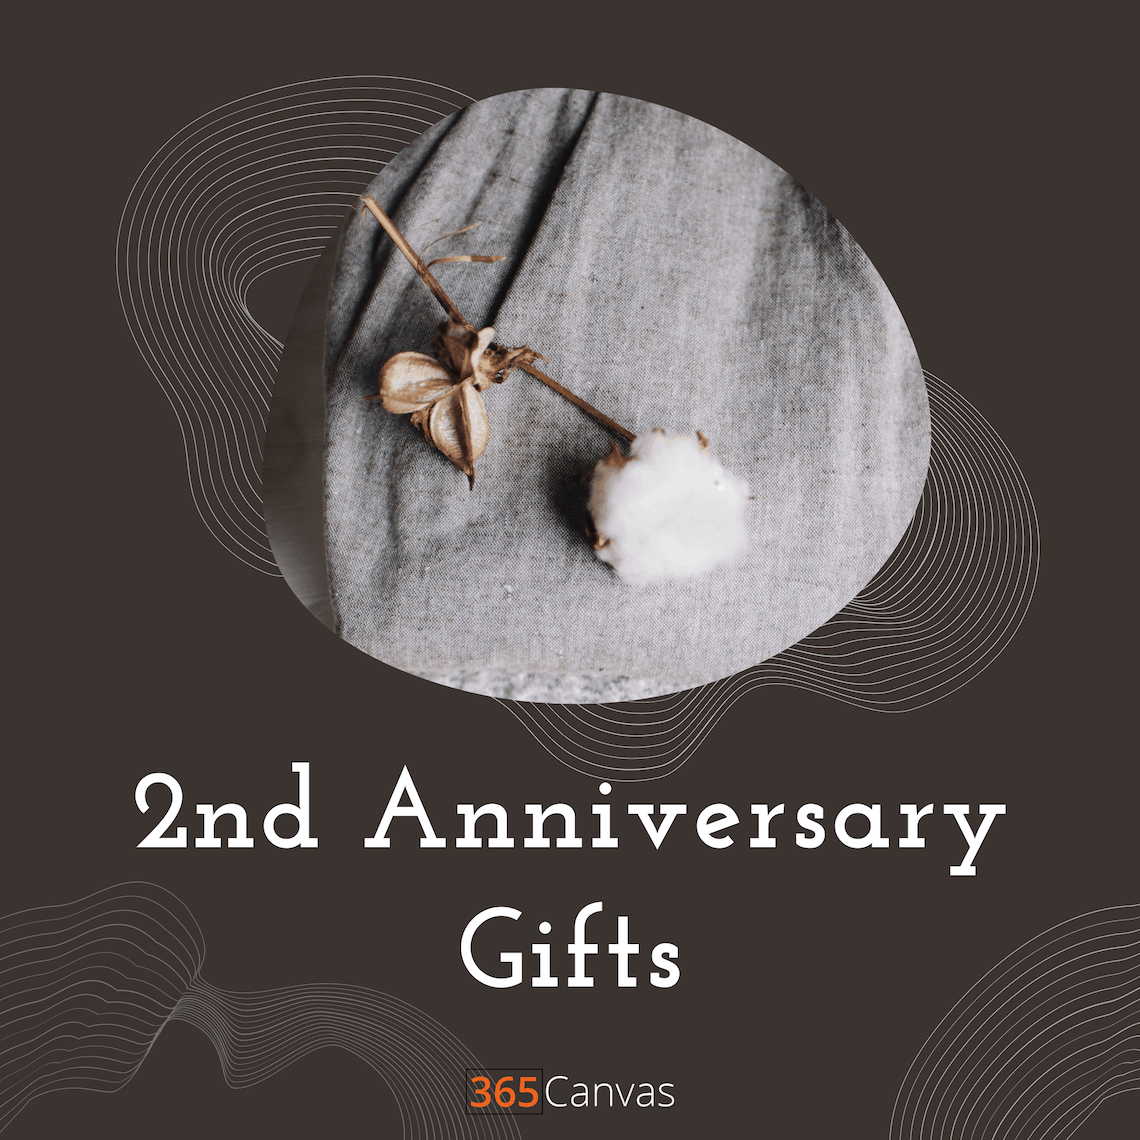 2nd Anniversary Gift Ideas: 30 Best Cotton Gifts for Him, Her and Couples (2021)